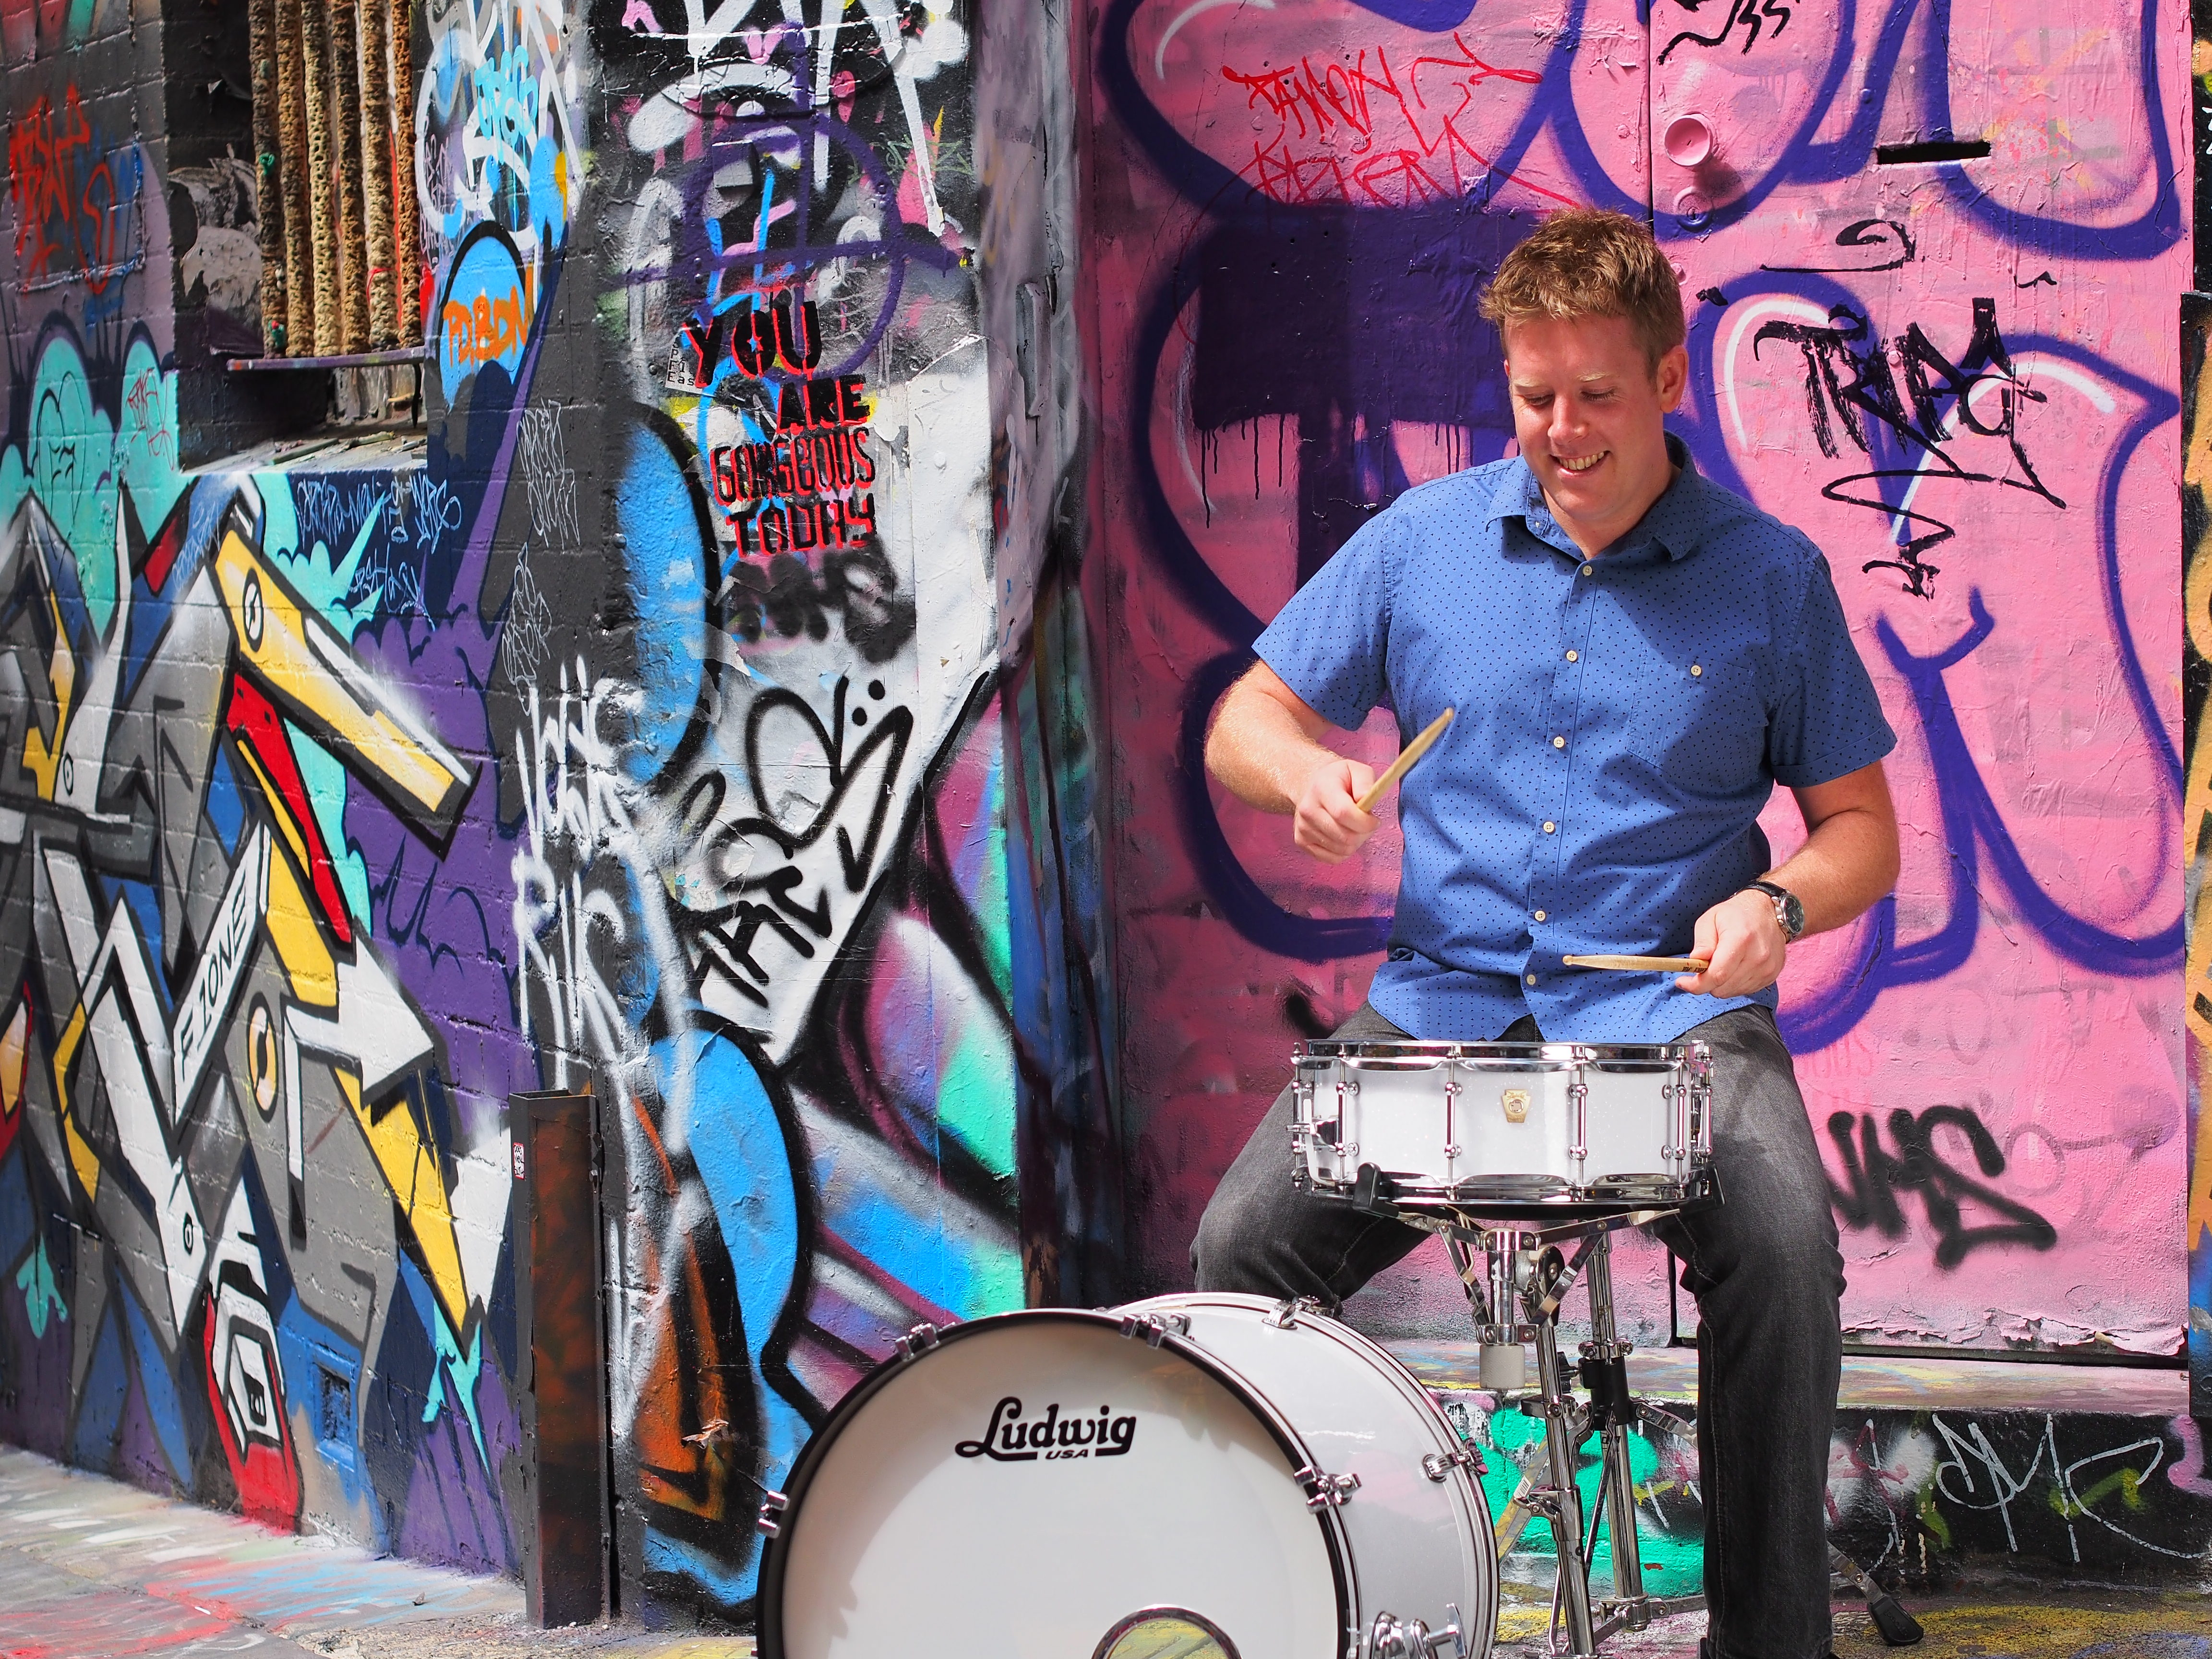 Alley drums